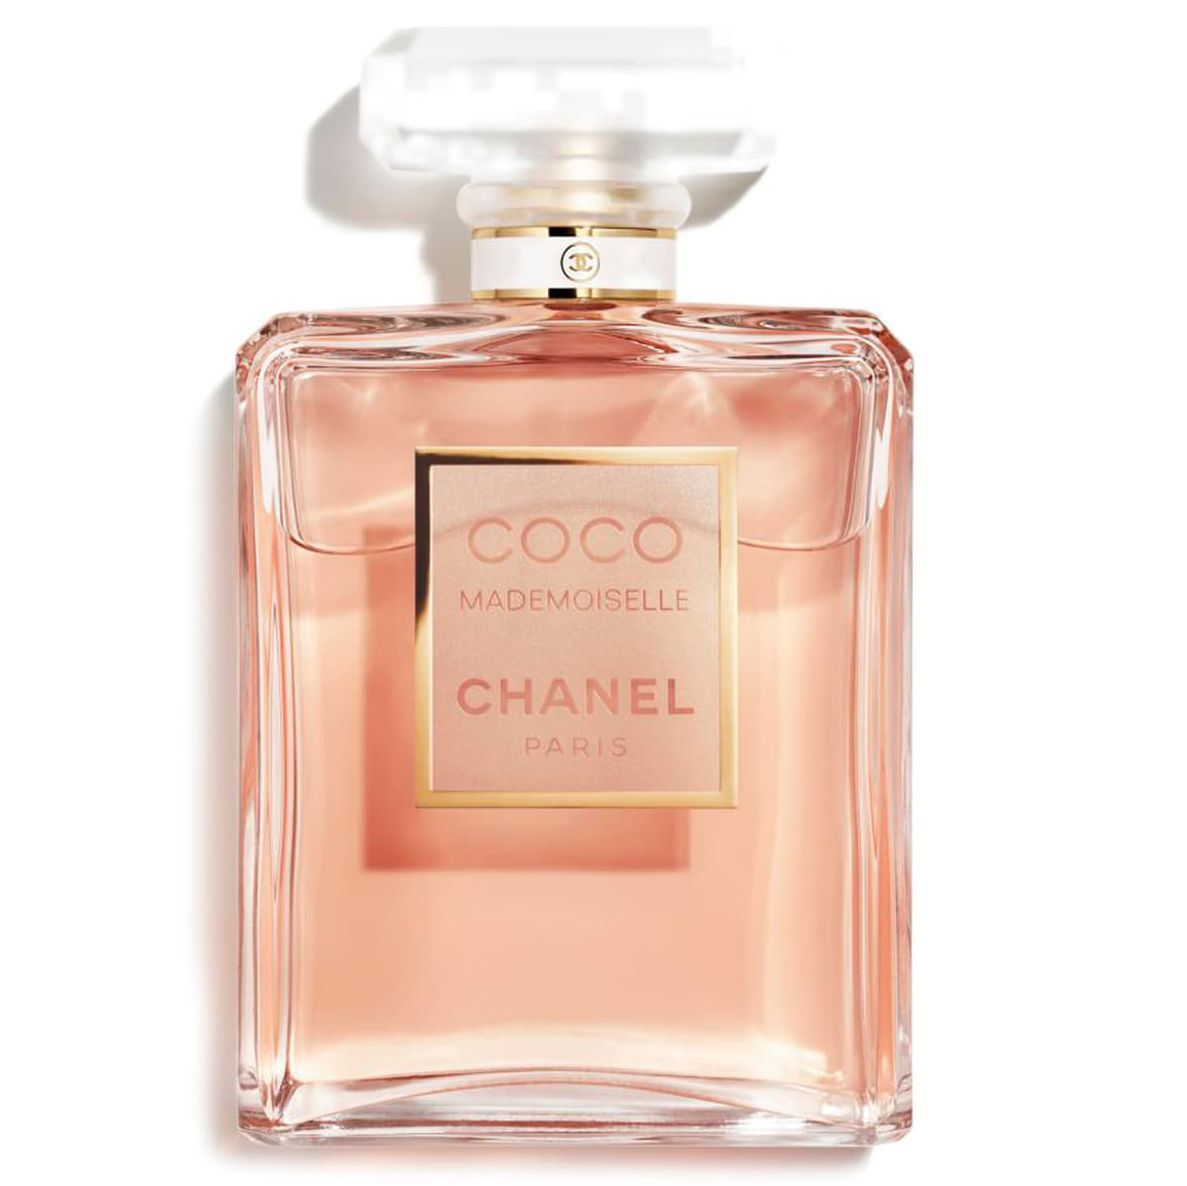 The Best Perfumes For Women: Bestselling Fragrances 2020